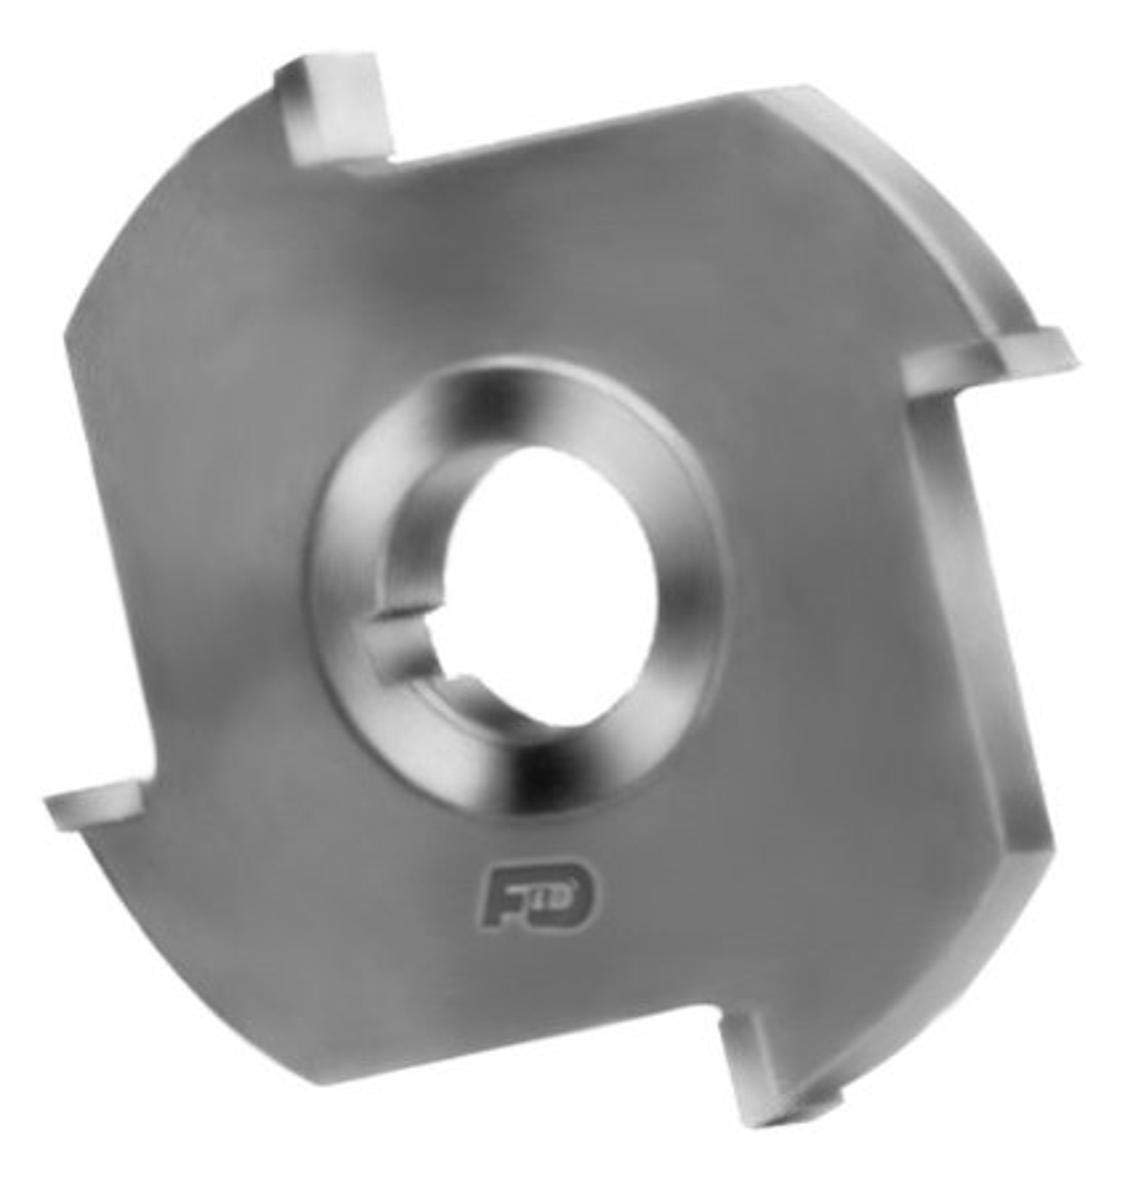 F&D Tool Company 12023-AC5241 Carbide Tipped Side Milling Cutter, Non Ferrous, 1